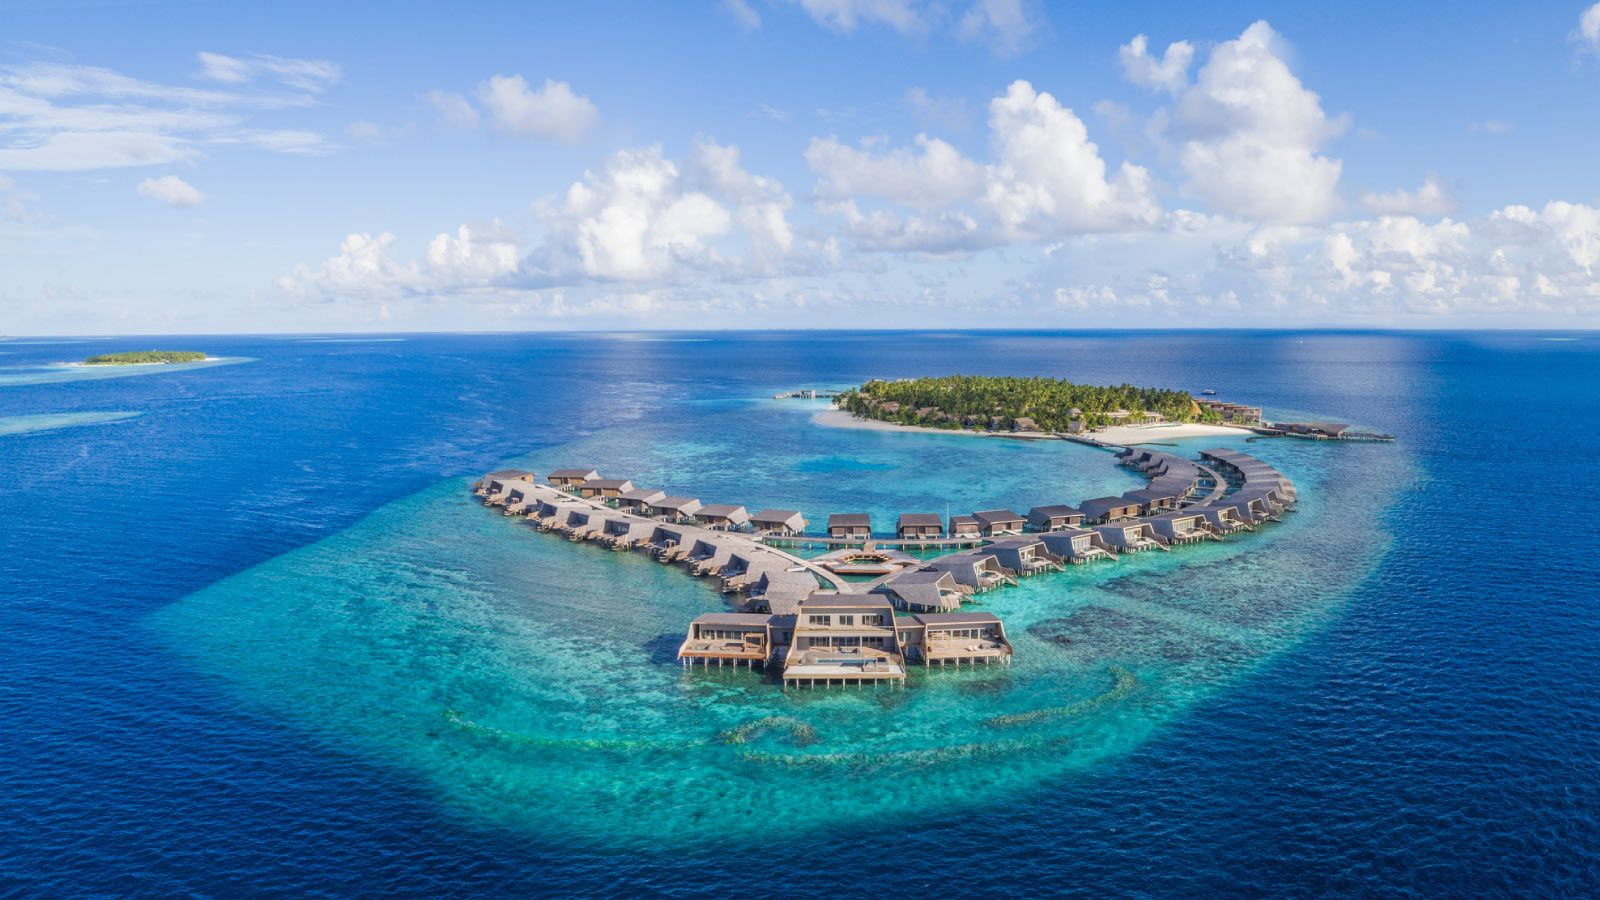 The St. Regis Maldives House Reef Aerial View